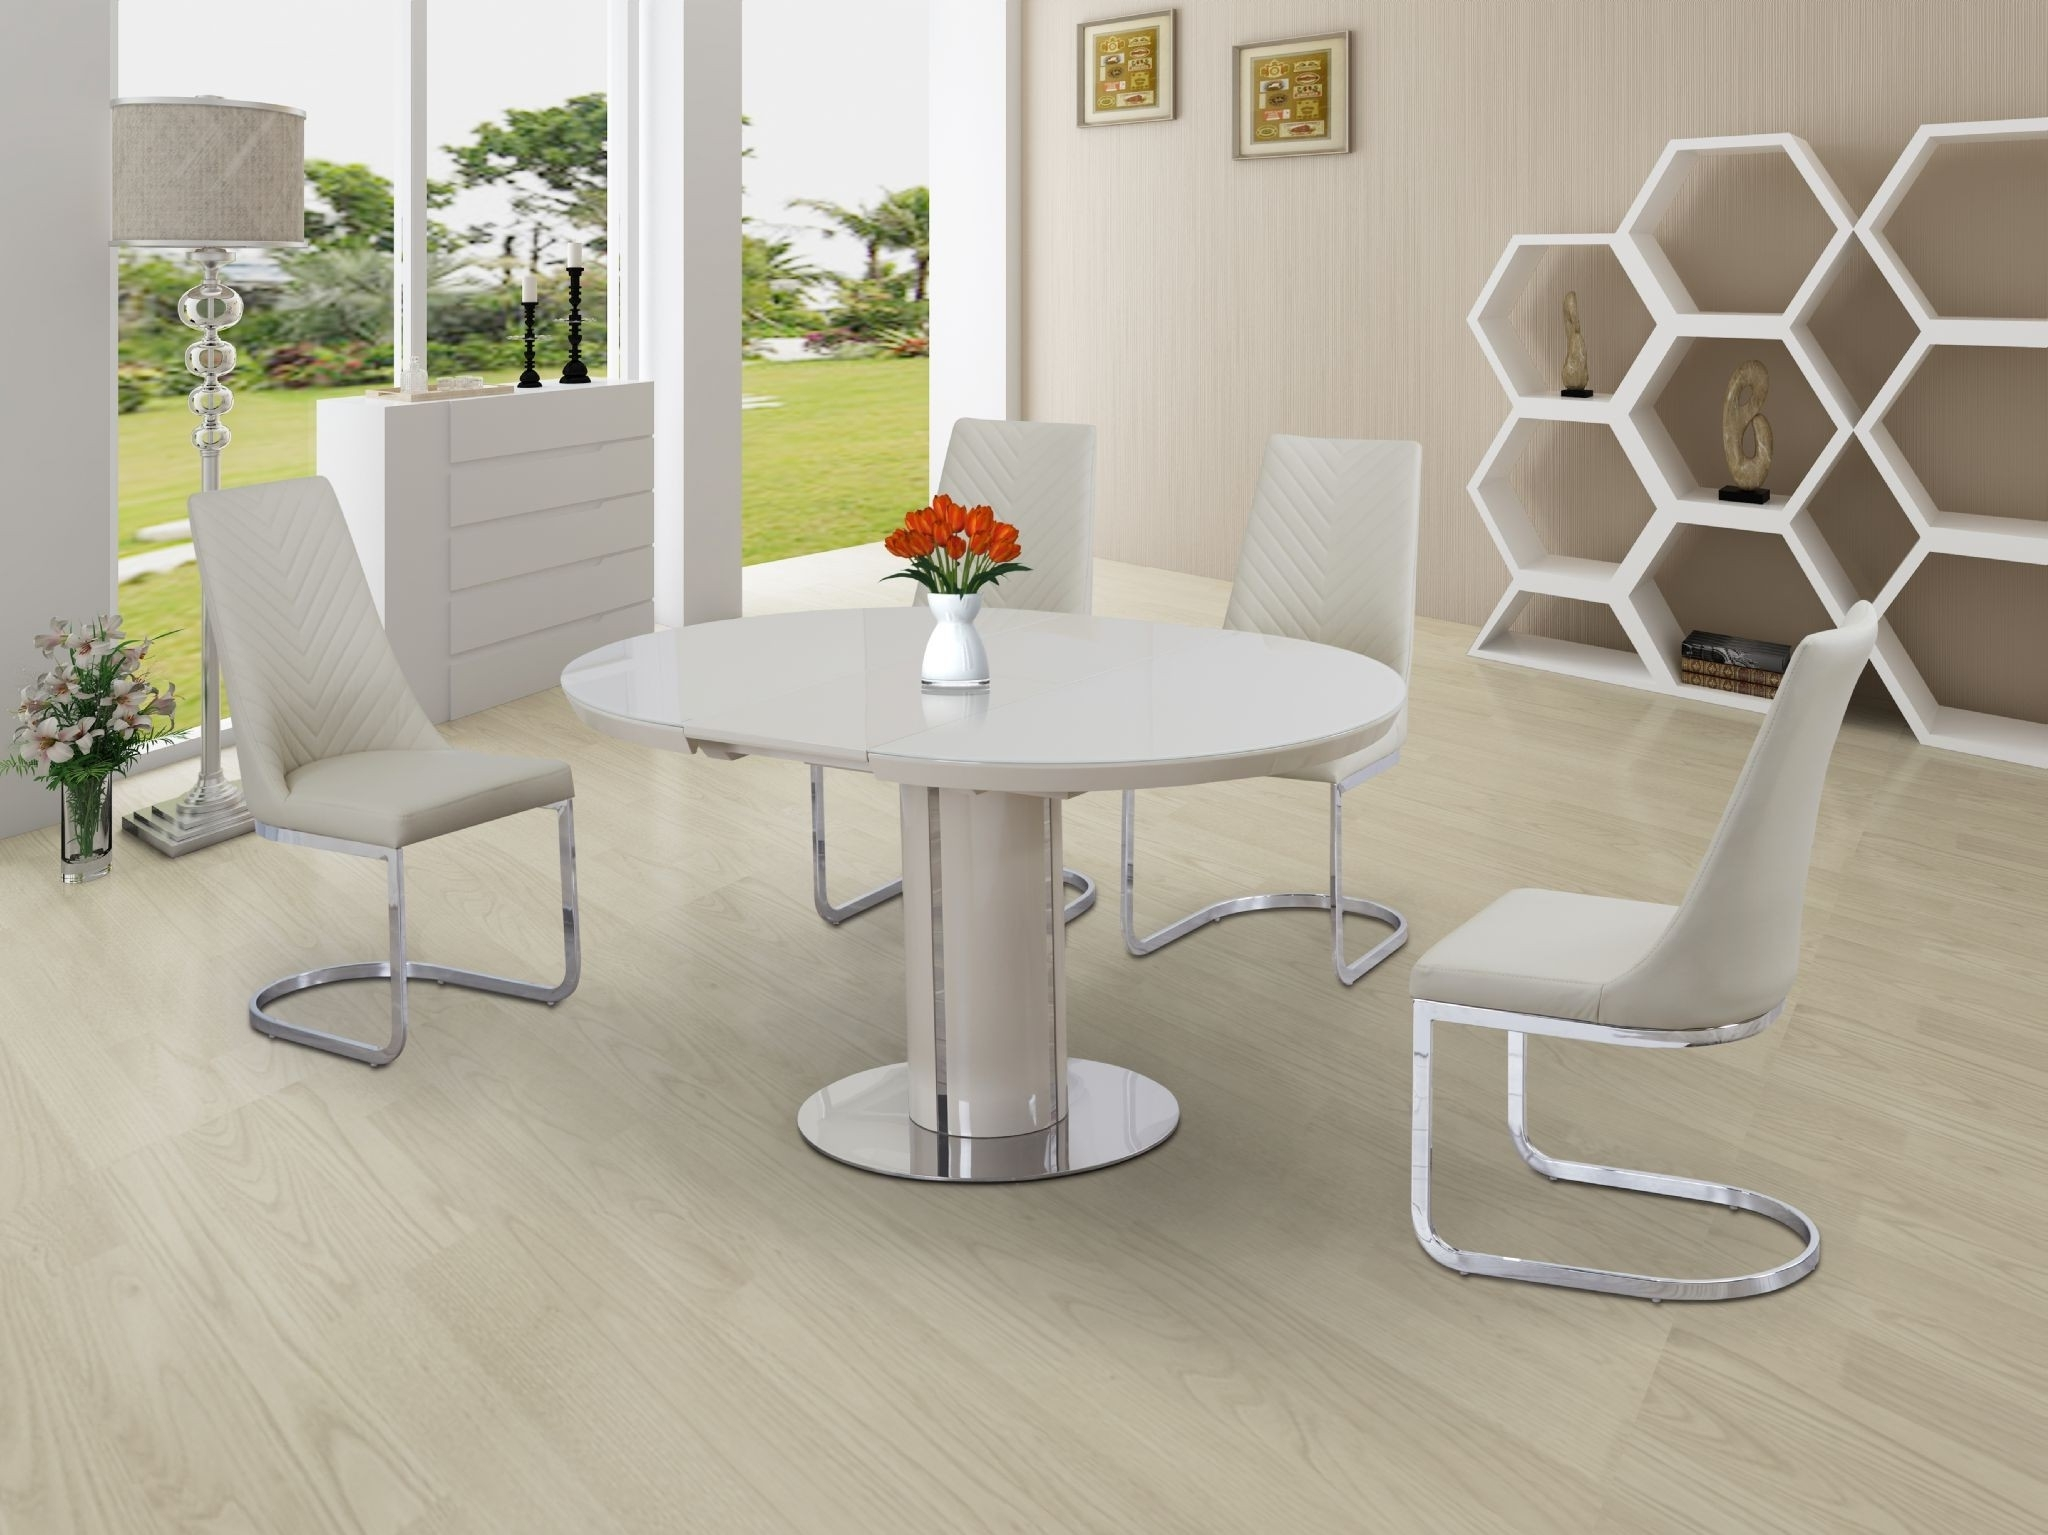 Buy Annular Cream High Gloss Extending Dining Table Regarding Newest Round High Gloss Dining Tables (Gallery 4 of 25)